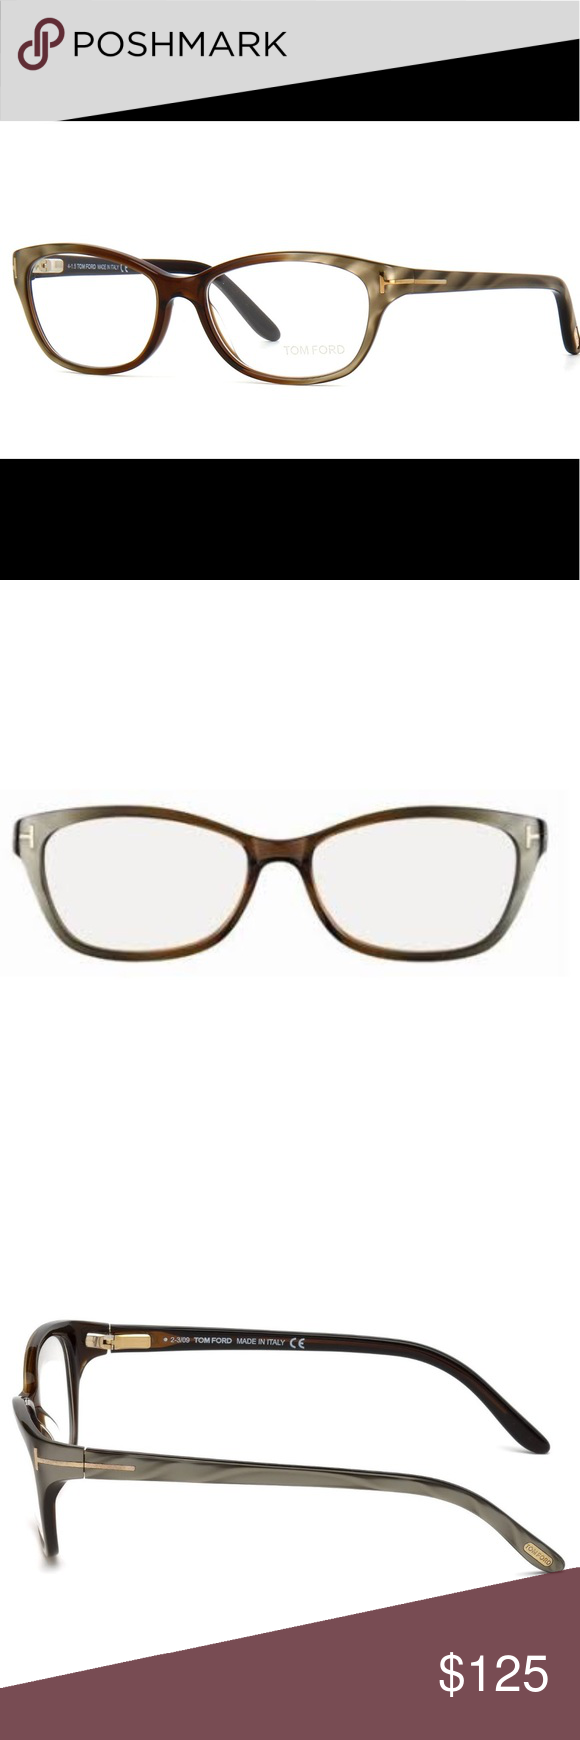 c16fa8429386a Tom Ford TF 5142 Brown Olive Optical Frames Tom Ford TF 5142 Brown Olive  Optical Frames - Size 54-15-135 - new never worn. Tom Ford Accessories  Glasses